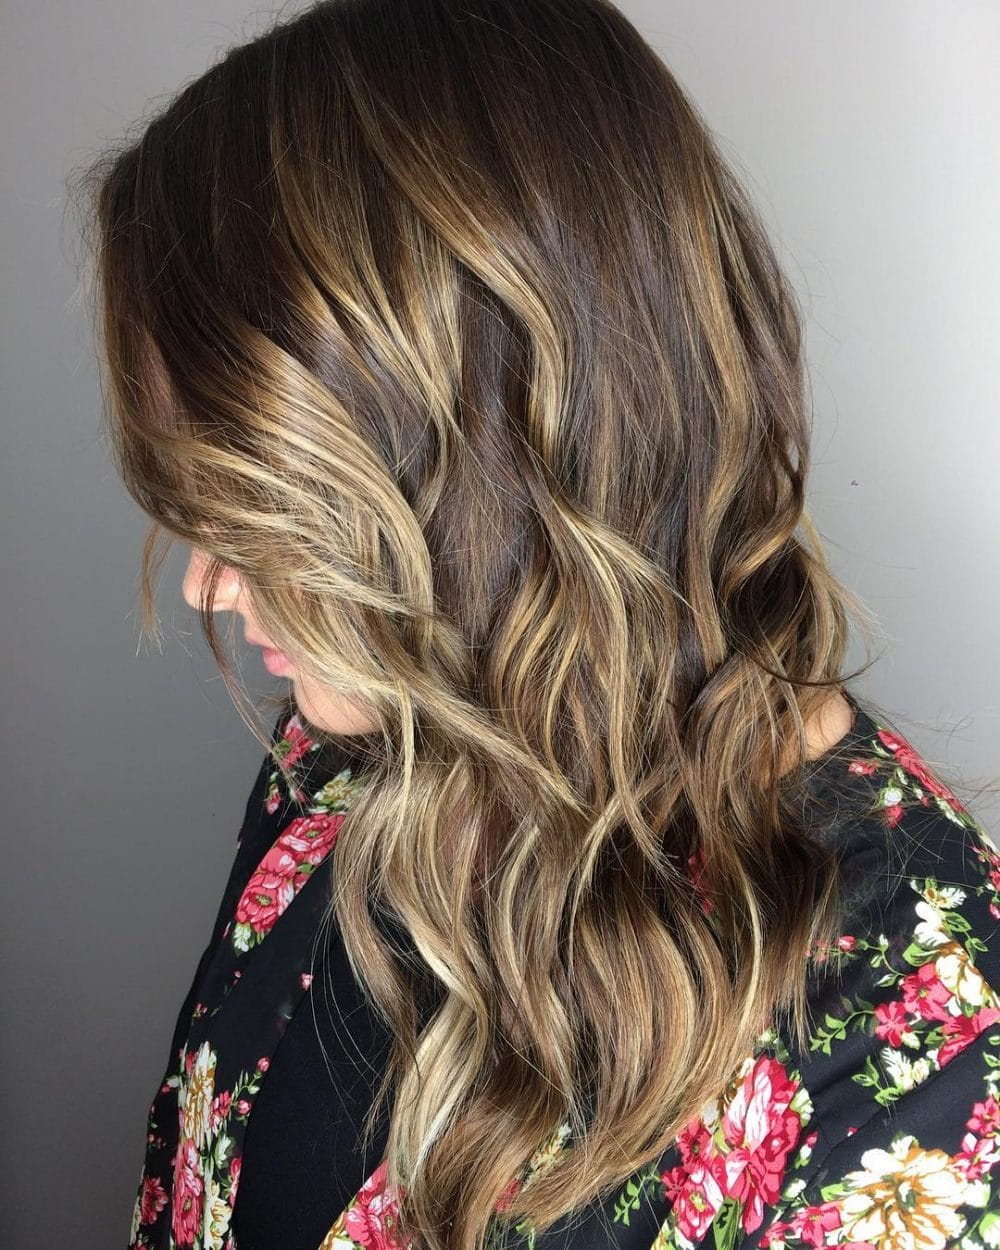 Dimensional Balayage hairstyle